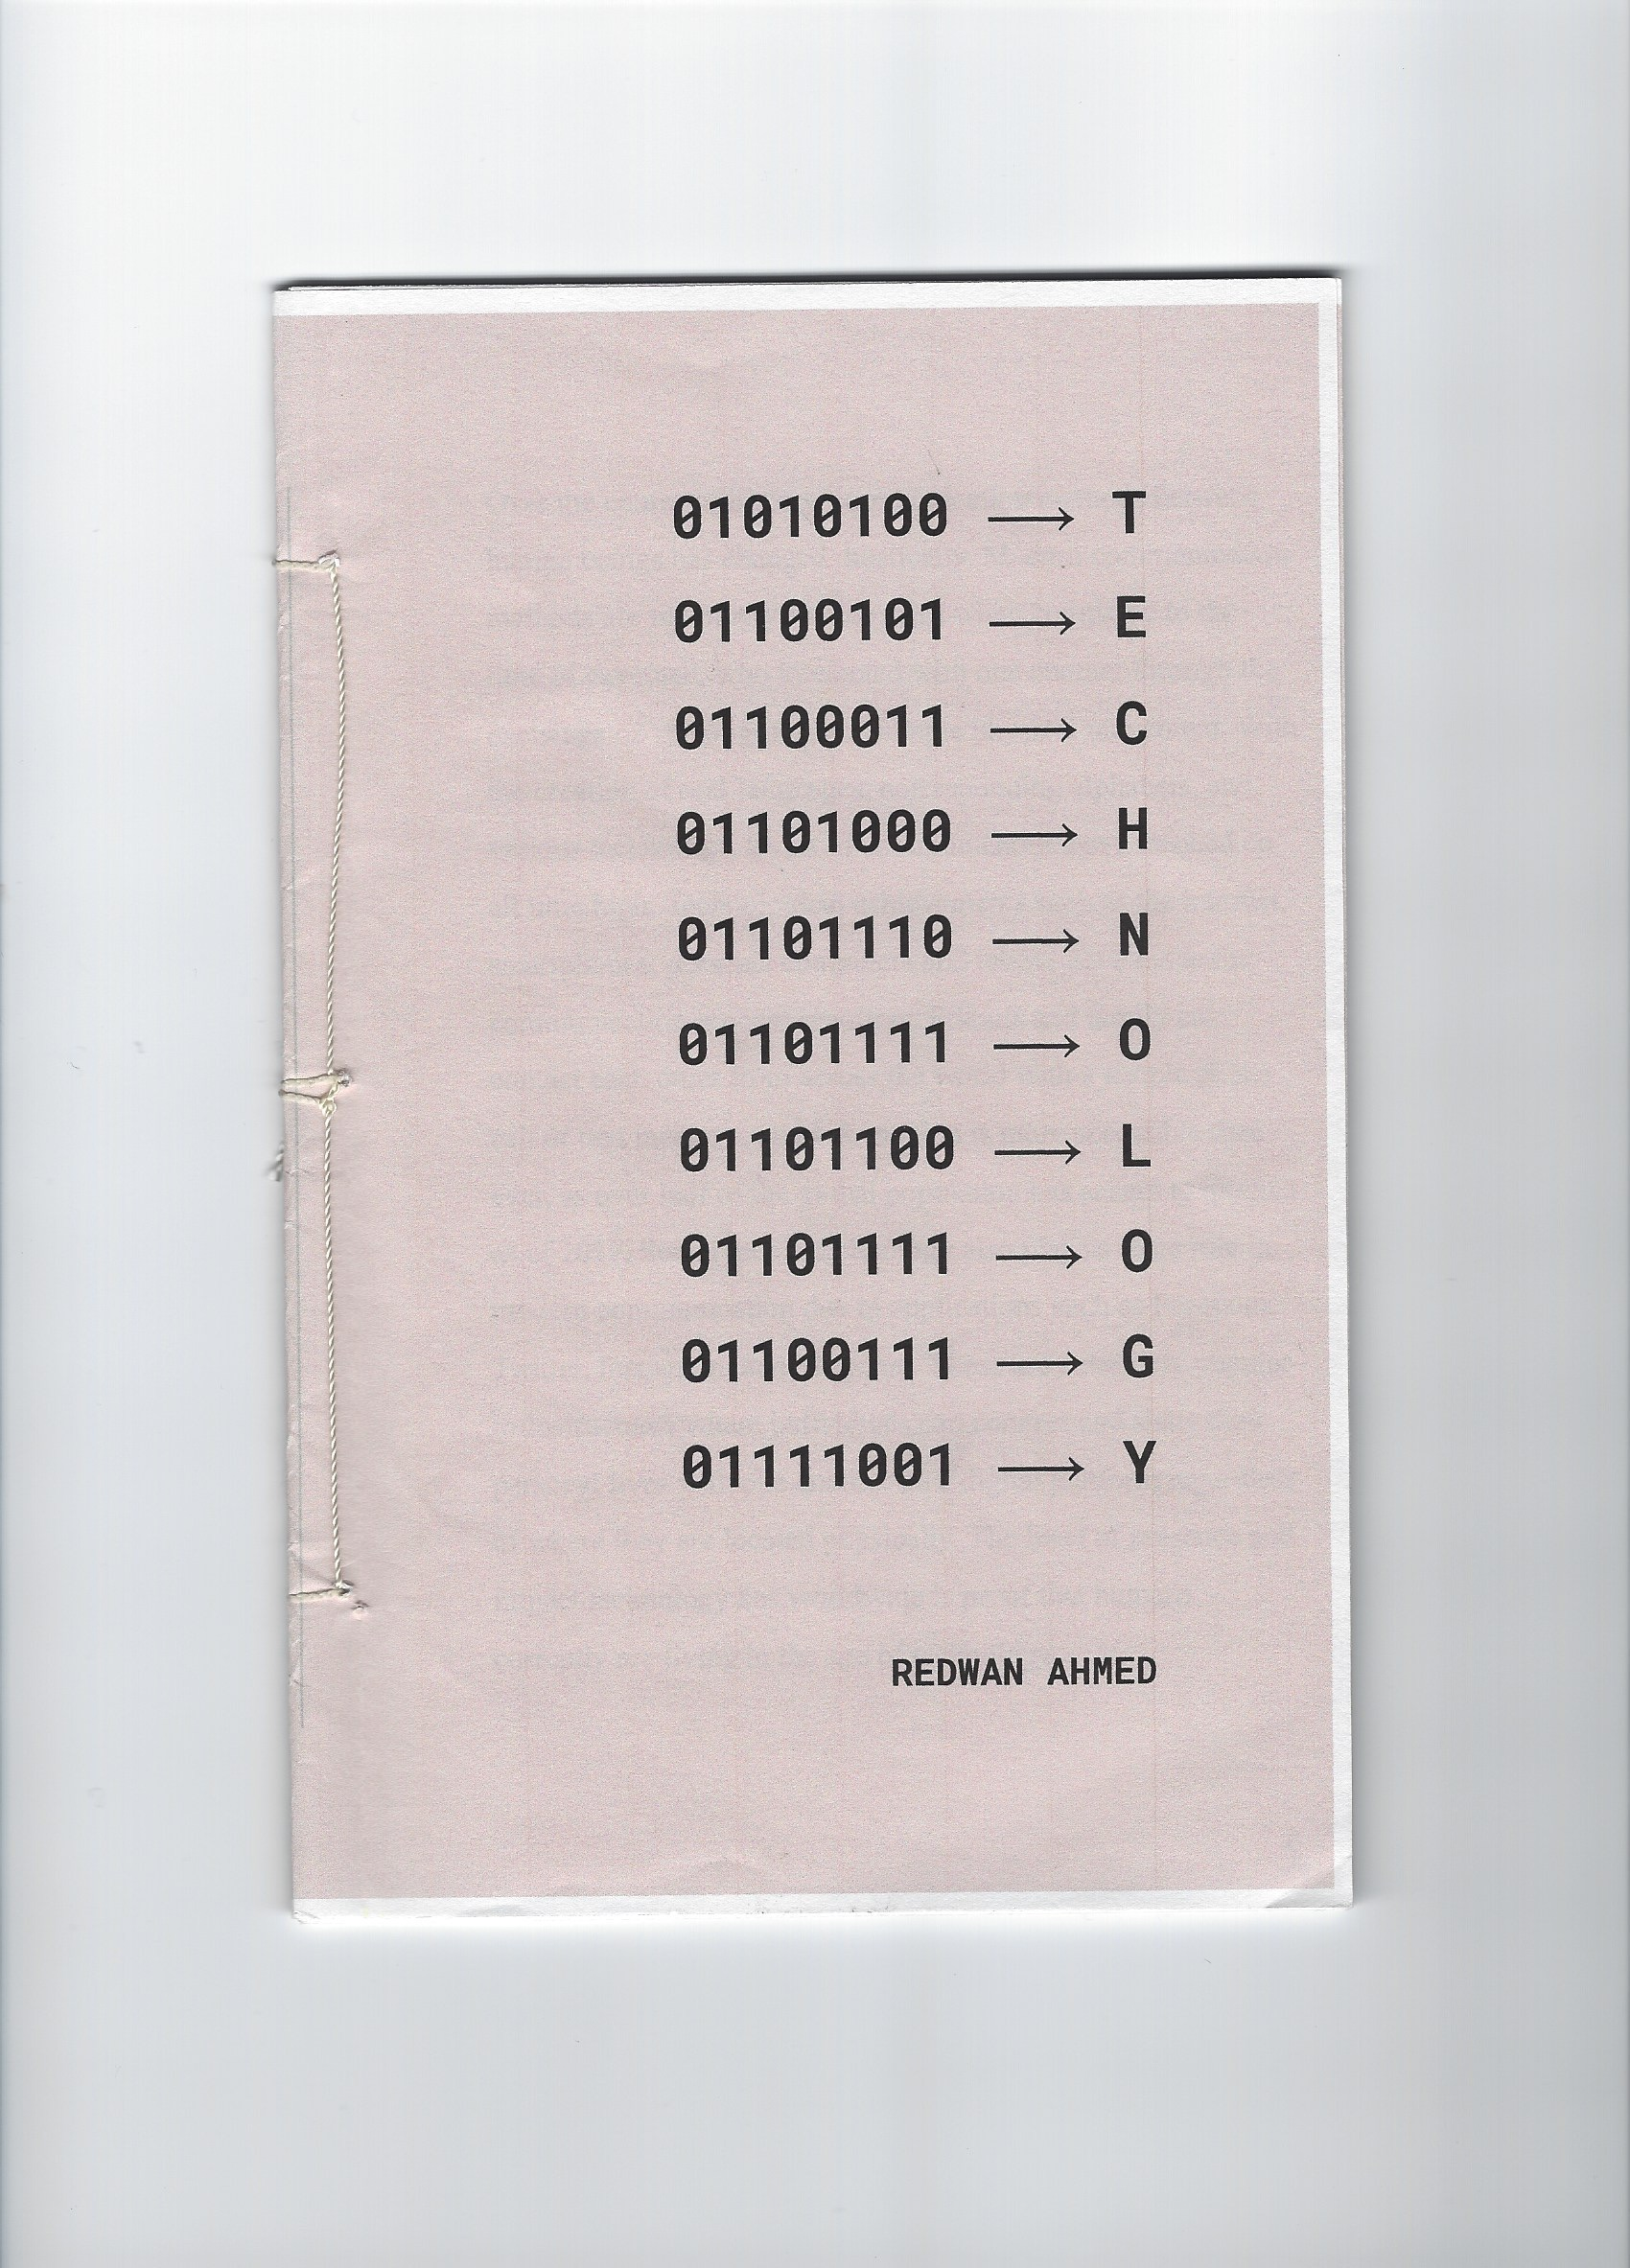 Front Cover: The front cover page that displays the title of the work in both binary code and english. The authors name is presented towards the bottom of the page.